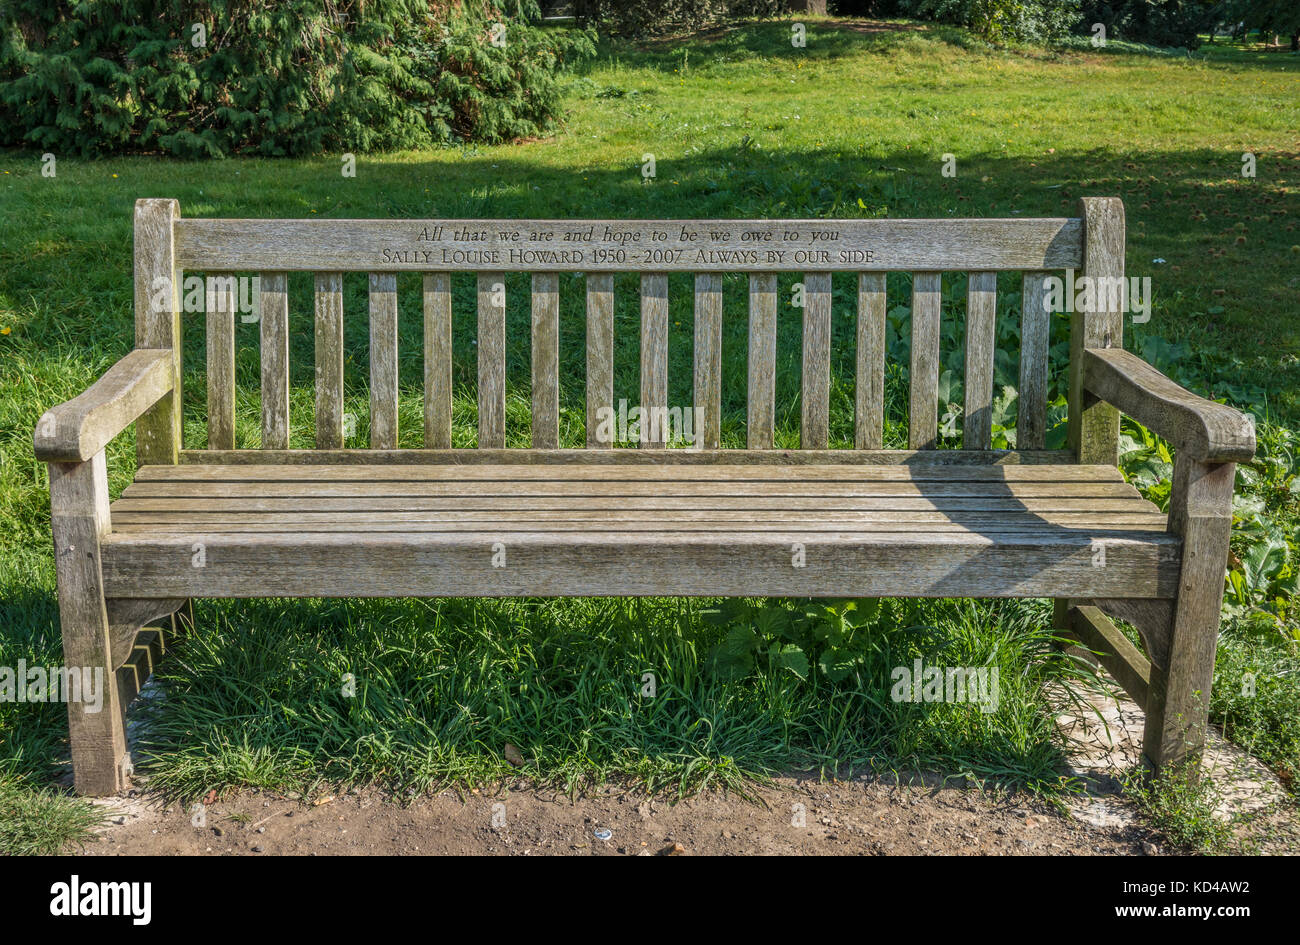 Sturdy wooden bench, engraved with tribute to the person in whose name it was erected in remembrance. Gunnersbury - Stock Image